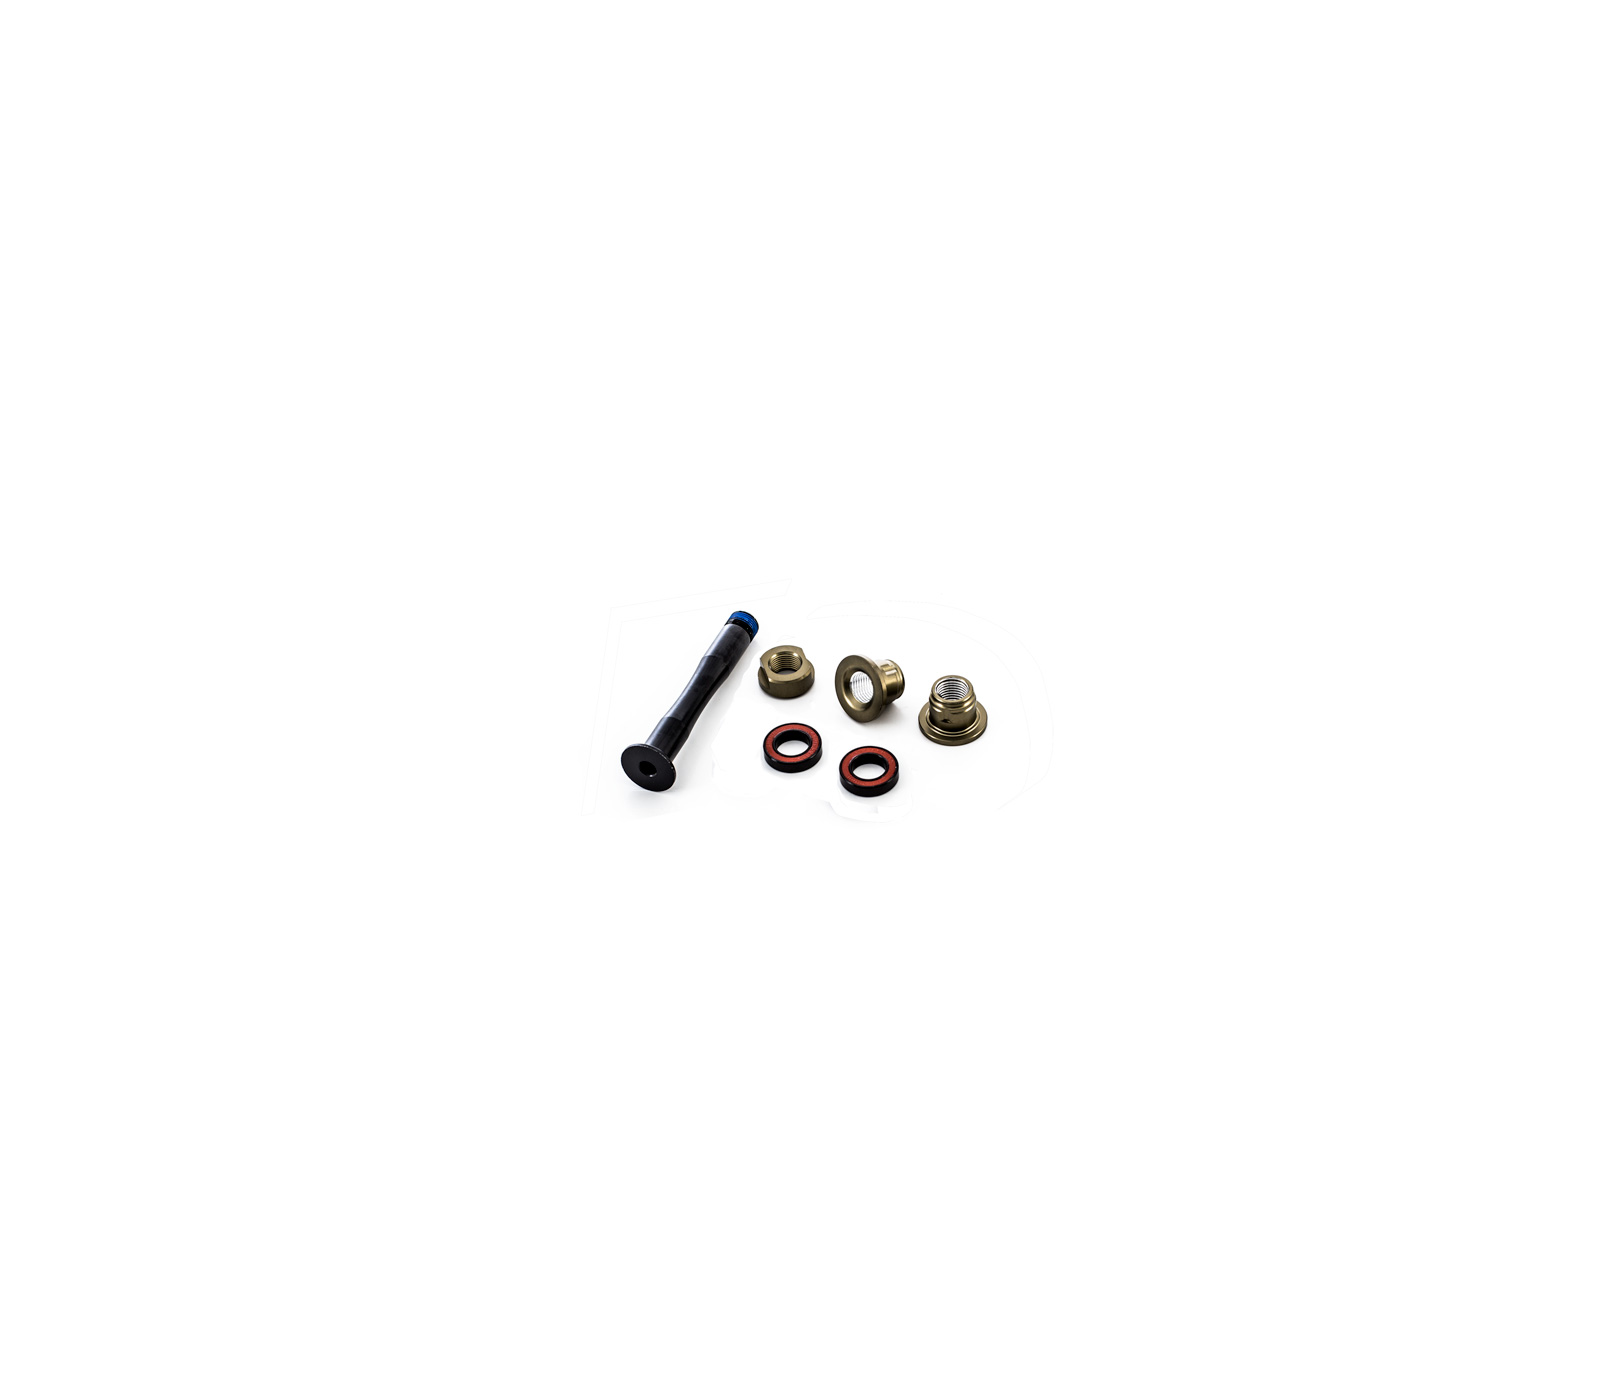 MAIN PIVOT AXLE KIT OCCAM H